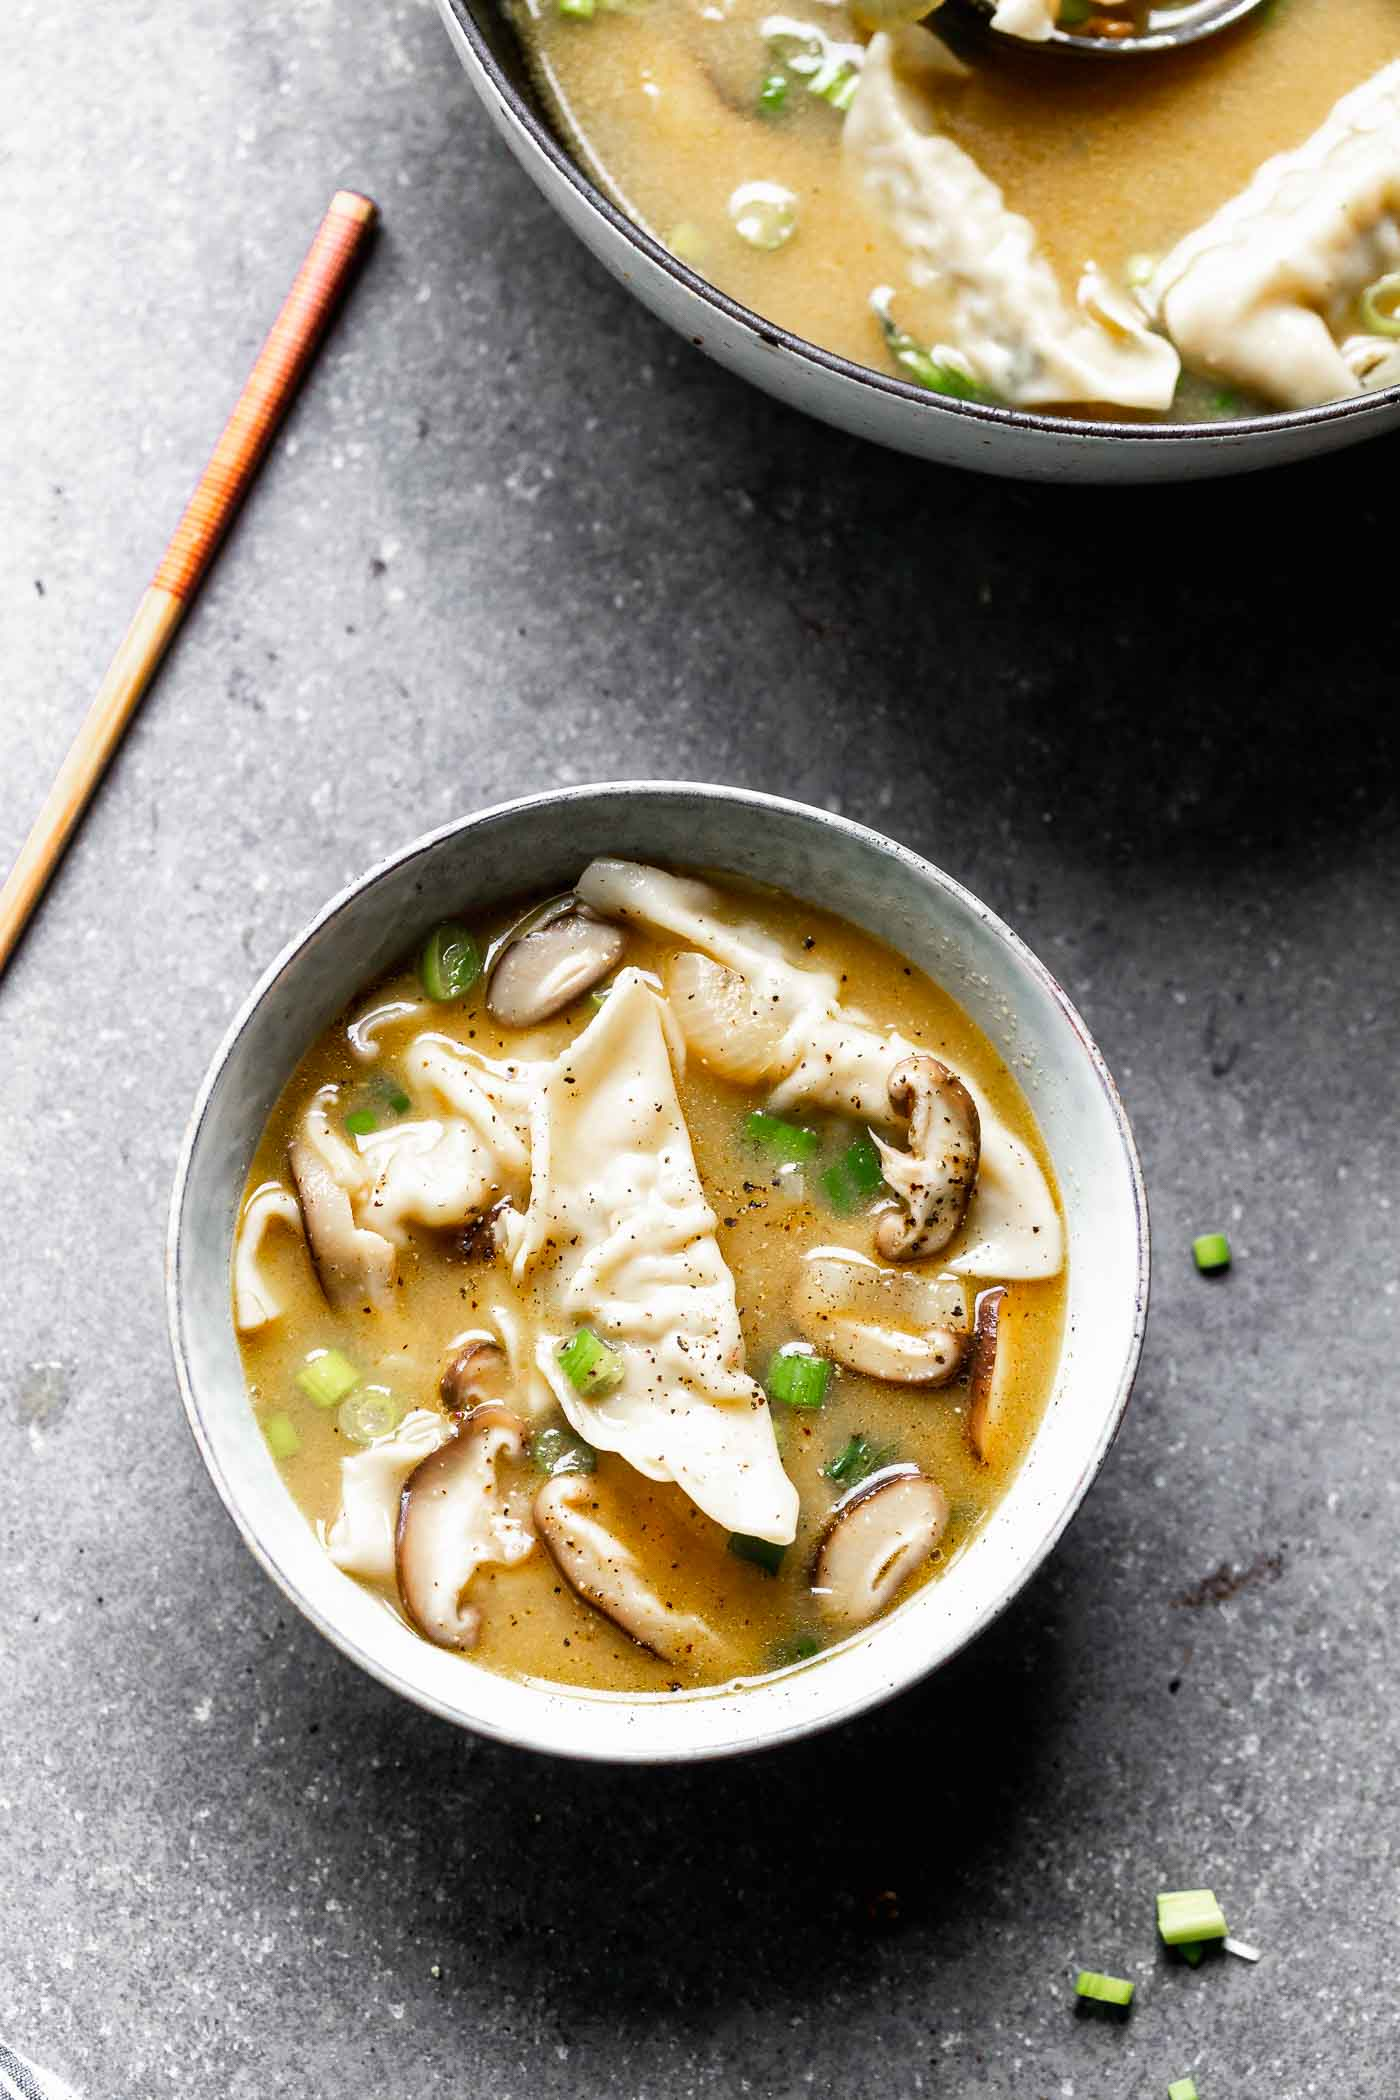 This Easy Wonton Soup takes a shortcut with frozen dumplings but doesn't take any shortcuts on flavor. The broth is packed with only a few ingredients - ginger, garlic, sesame and soy - but is SO flavorful. Earthy shiitake mushrooms and crisp green onions round it out!